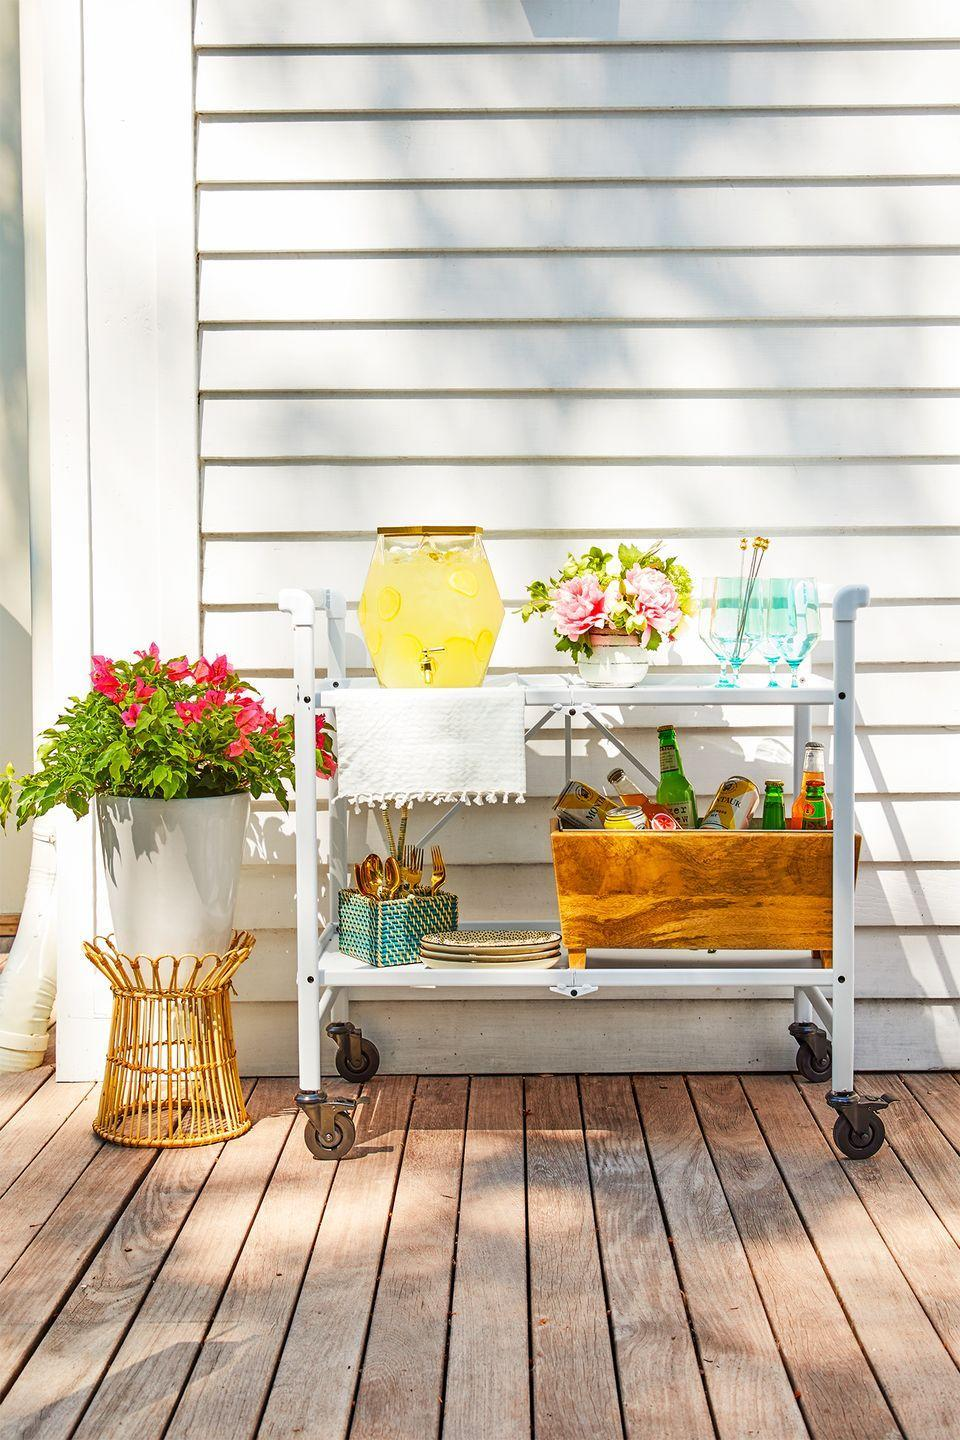 """<p>When done right, utility carts become the ultimate drink station. Deck out the shelves with coolers, glasses, utensils, and pitchers full of party punch (or another drink of your choice). </p><p><strong>RELATED:</strong> <a href=""""https://www.goodhousekeeping.com/home/g31206630/outdoor-bar-ideas/"""" rel=""""nofollow noopener"""" target=""""_blank"""" data-ylk=""""slk:The Best Outdoor Bar Carts"""" class=""""link rapid-noclick-resp"""">The Best Outdoor Bar Carts </a></p>"""